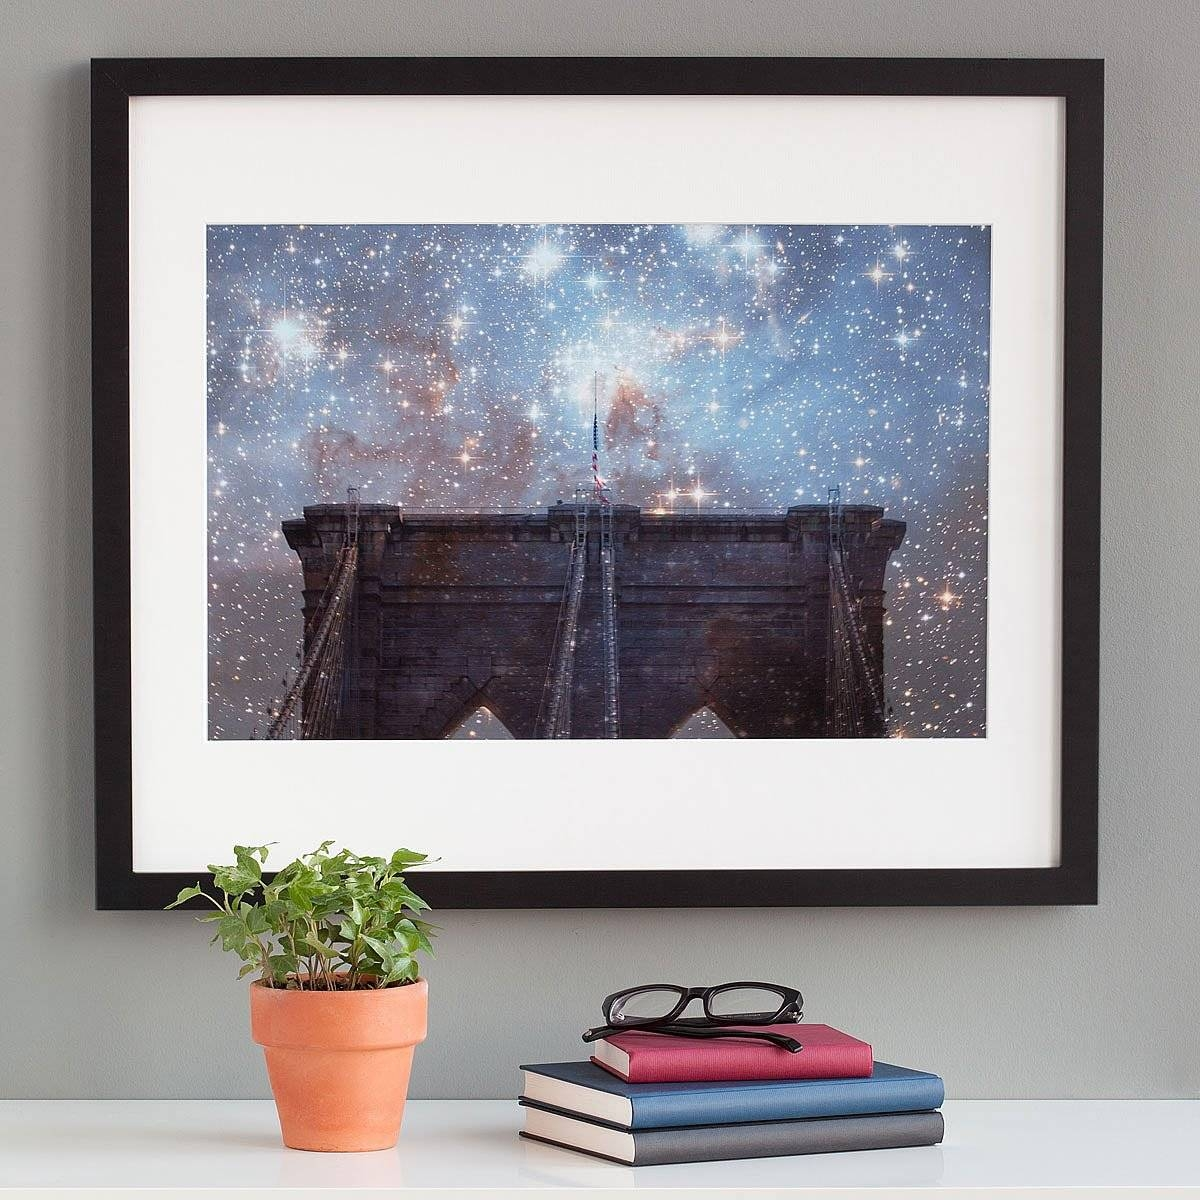 Unique Photography Art, Photo Wall Art | Uncommongoods Pertaining To 2018 Photography Wall Art (View 20 of 25)